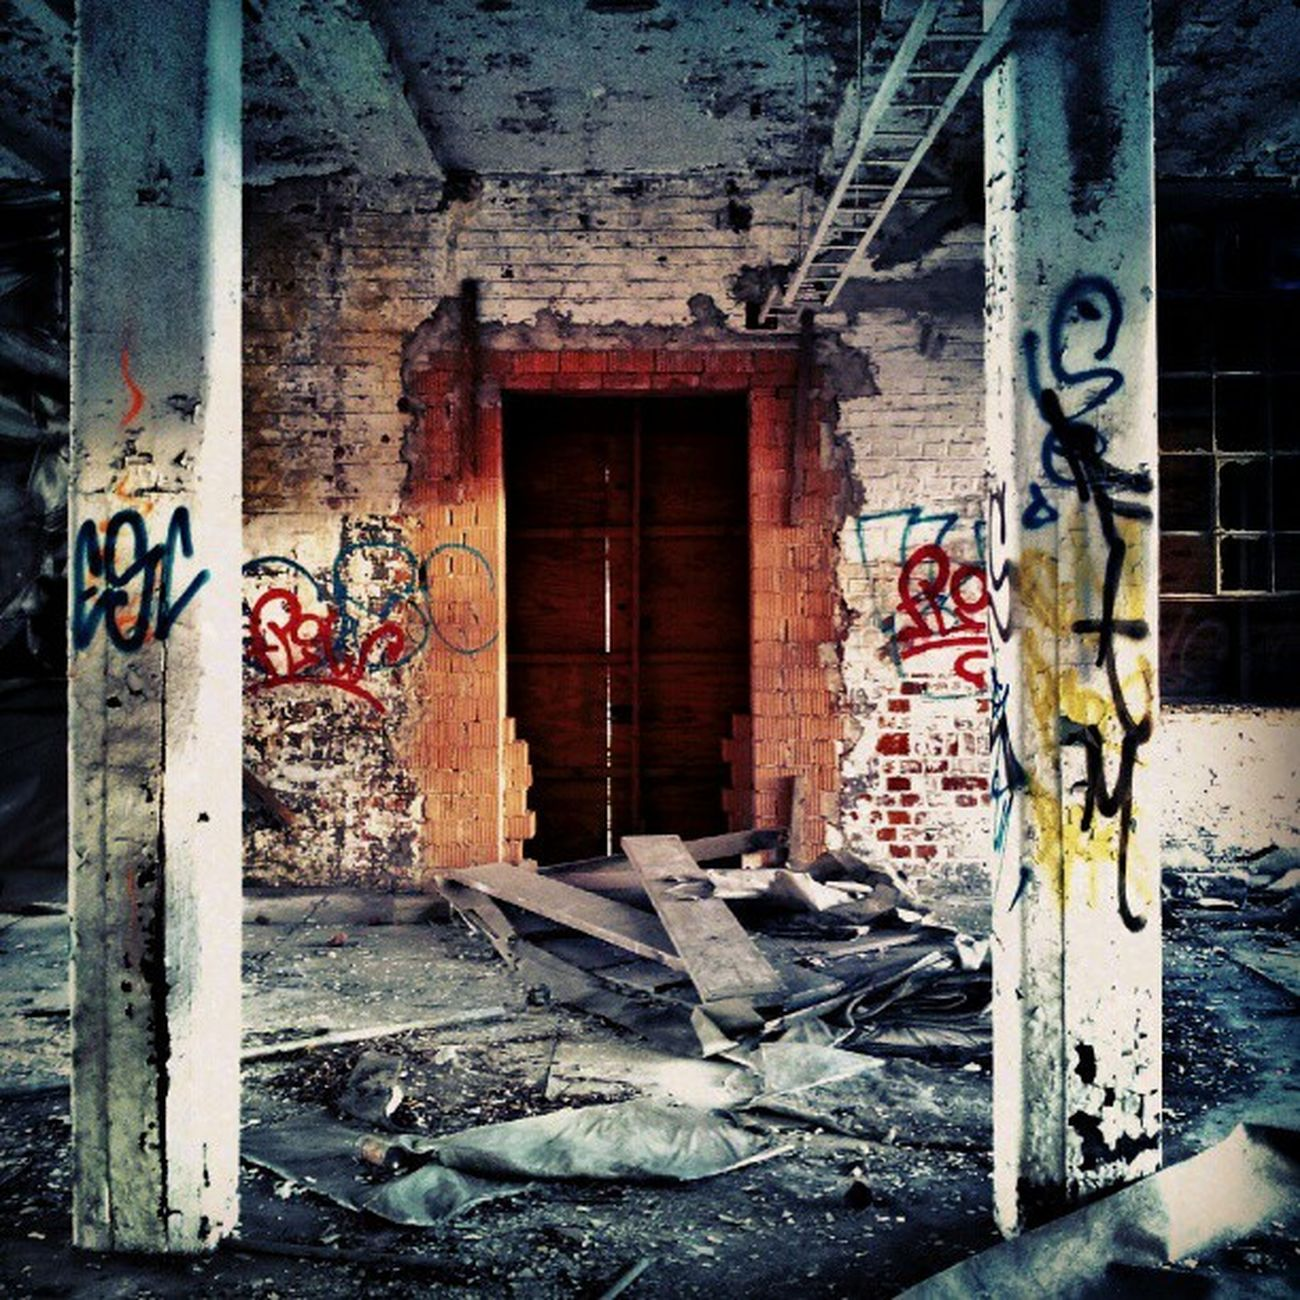 #lostplace #detailsofdecay #beautifuldecay #findingbeautyoutofshit #decay #grime #igdungeon #abandoned #abandonedbuilding #filthyfeeds #urbanexploration #lostplaces #lostinplace #rotten #royalsnappingartists #derelict #sfx_urbex #filthyfamily #urbanex #ph Decay Igdungeon Photowall Sfx_urbex Rotten Lostplace Urbex Icatch Partnersingrime Detailsofdecay Unitedbygrime Lostinplace Filthyfeeds Beautifuldecay Grime Organisedgrime Urbanexploration Grimenoir Findingbeautyoutofshit Abandonedbuilding Lostplaces Sutroalwayswins Filthyfamily Royalsnappingartists Hot_shotz Urbanex Abandoned Rottenfeed Derelict Amselcom